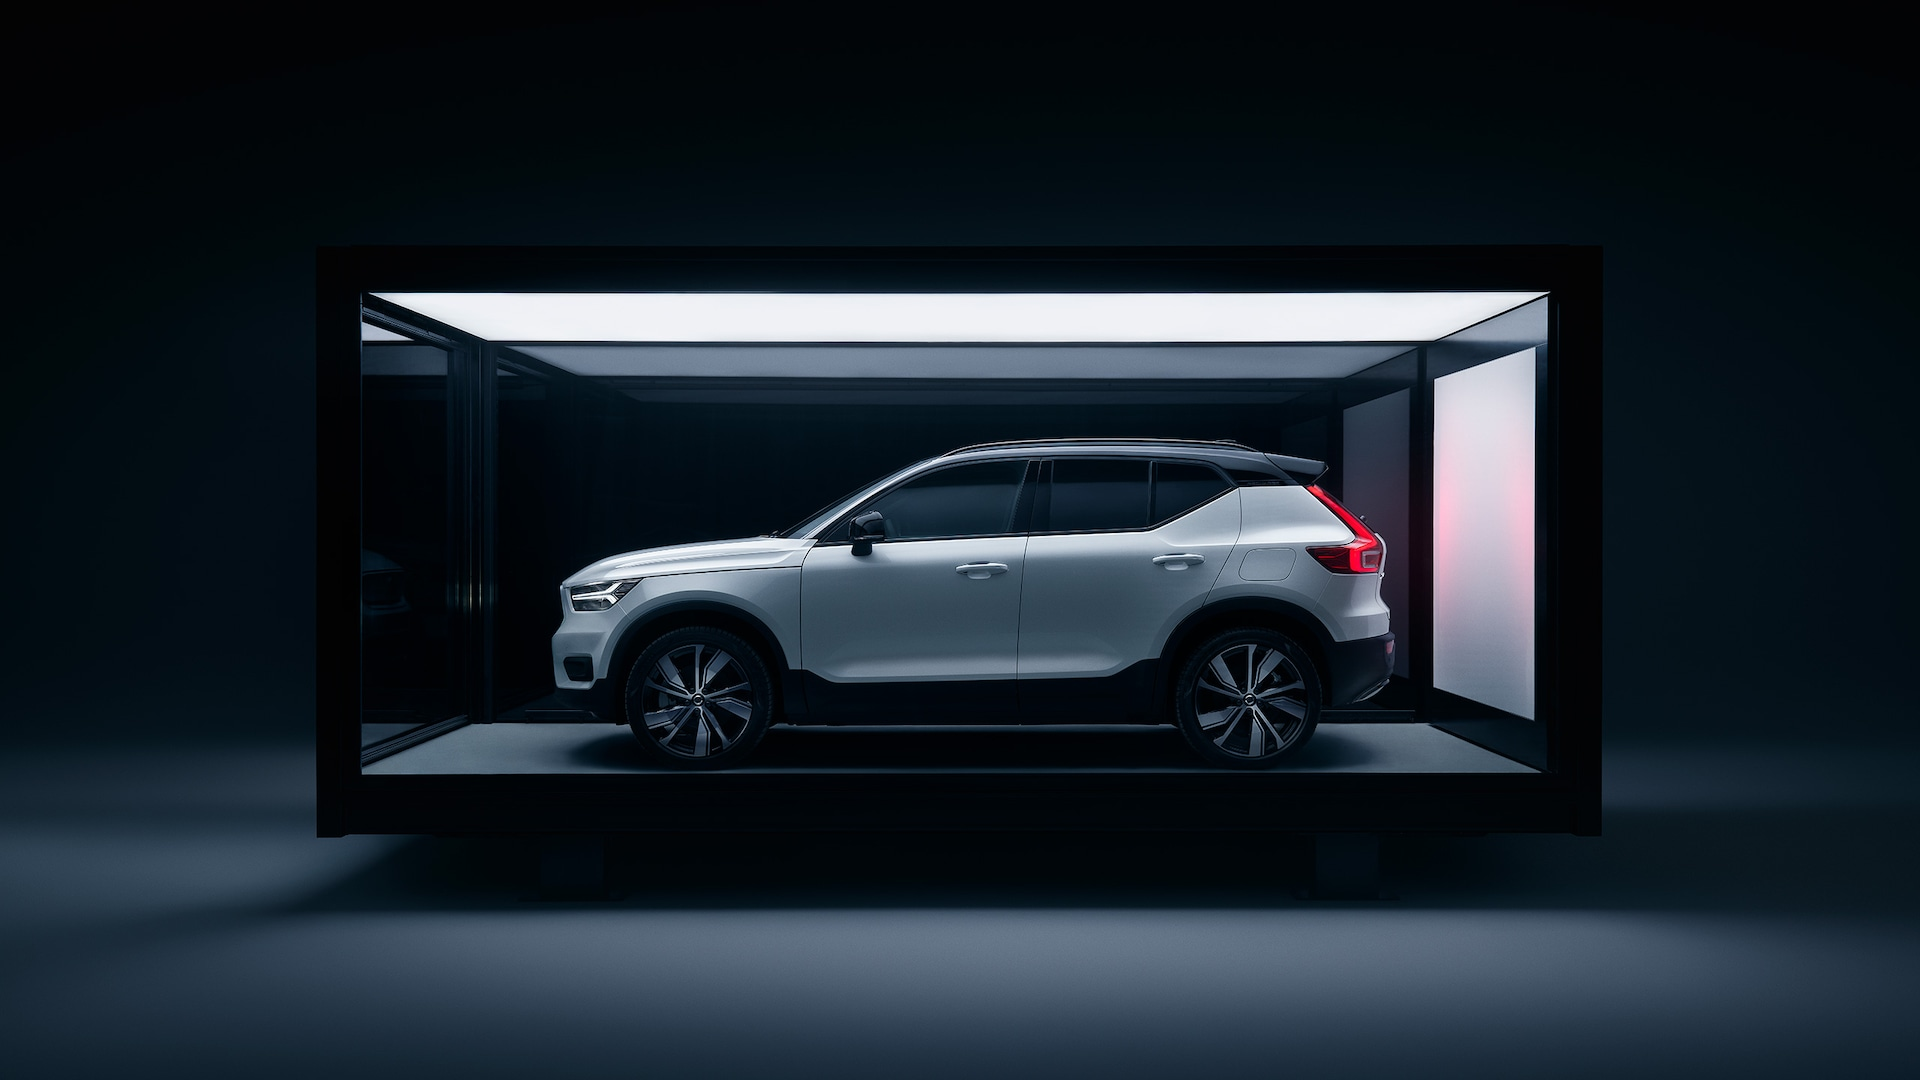 Volvo Studio, Explore cars, learn about new features and relax in our onsite café